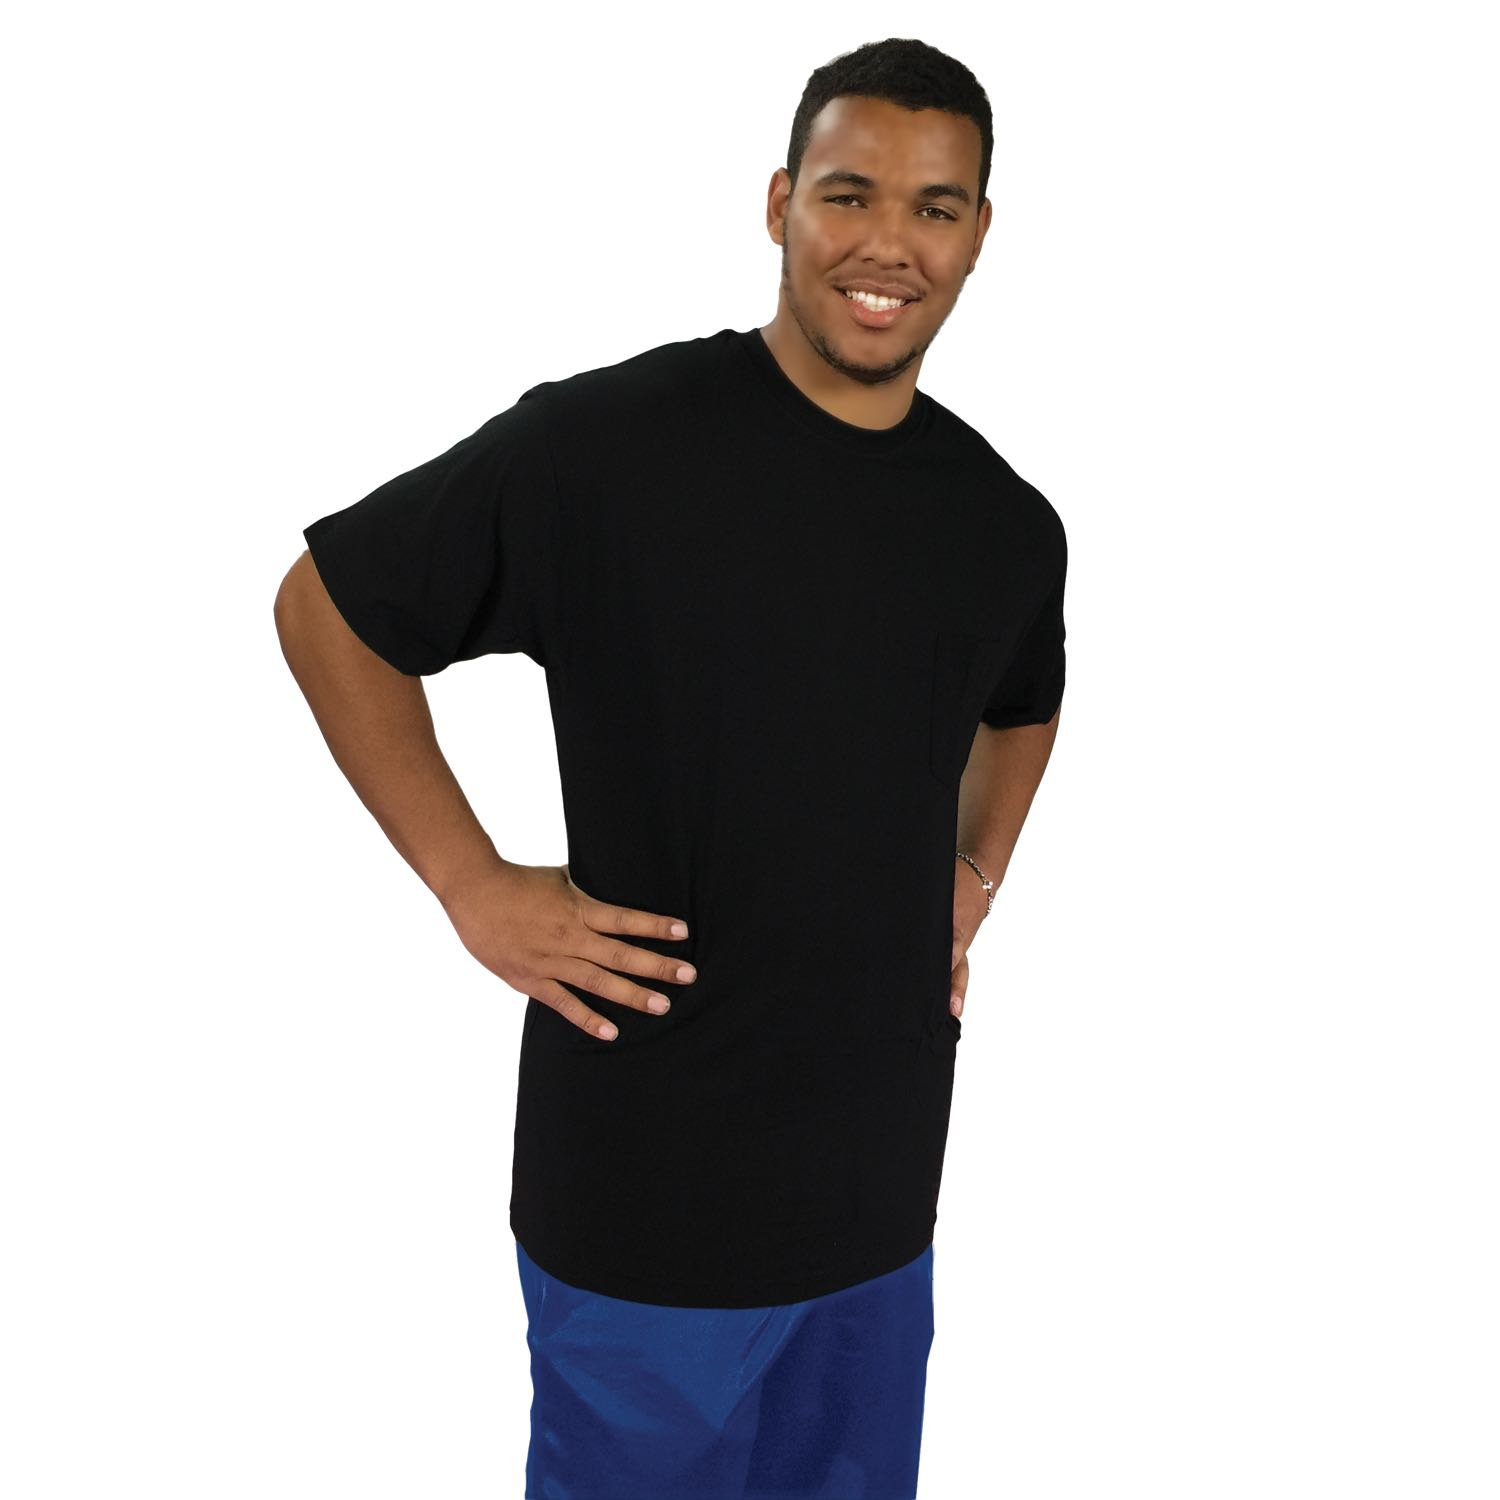 422652f54343 Amazon.com: Big Boy Bamboo Tall Crew Neck T-Shirt for Men - Short Sleeve  Tall Tee with Crew Neck, Made of Ultra-Soft Bamboo: Clothing